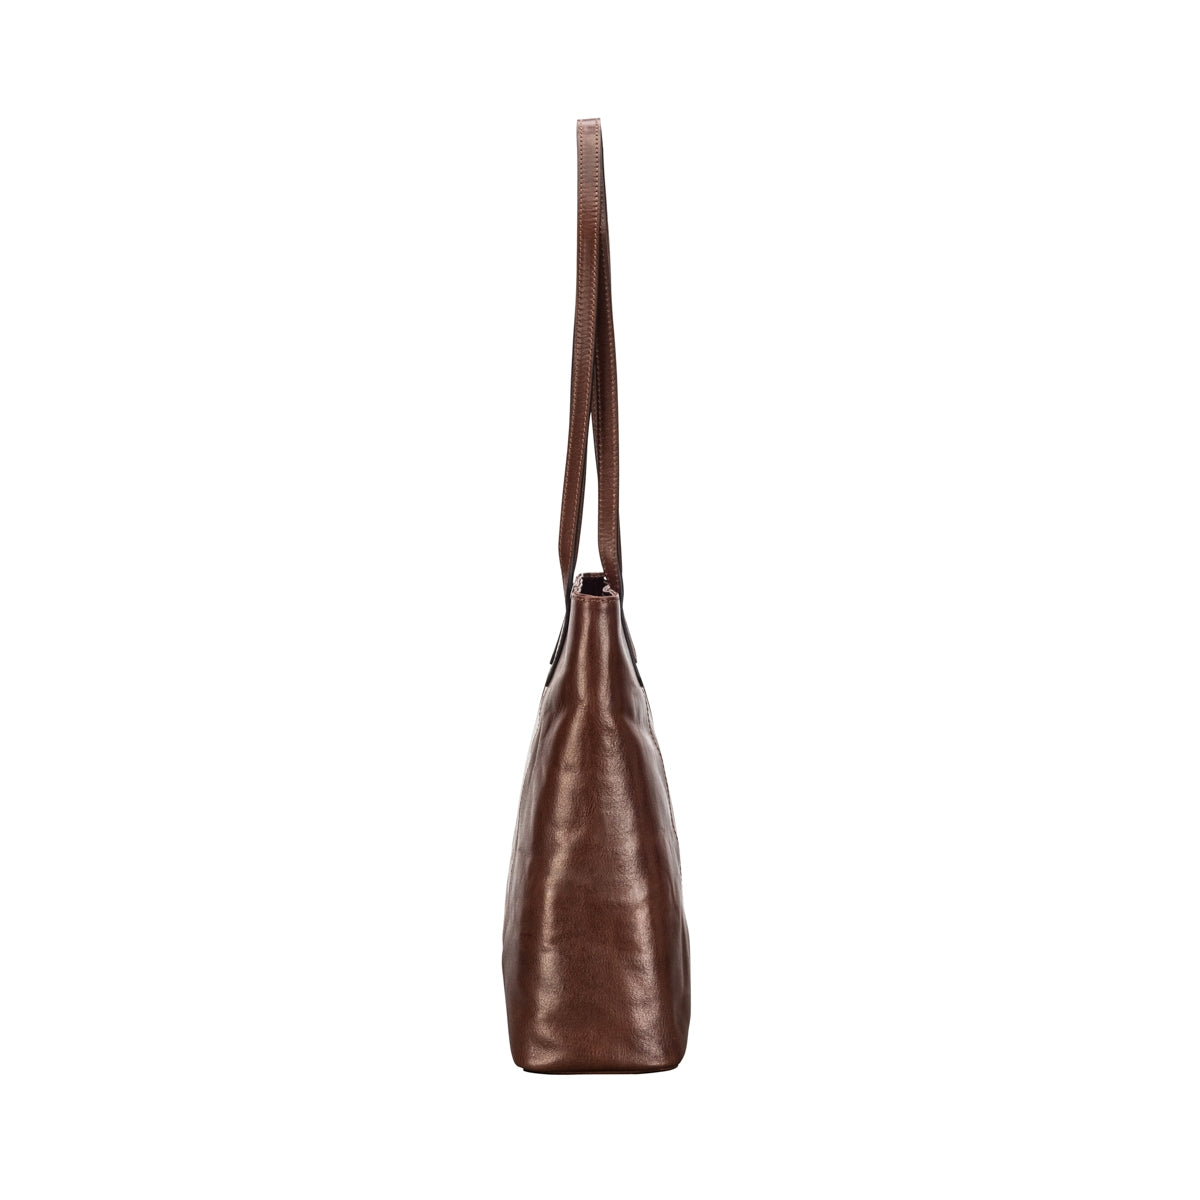 Image 3 of the 'Athenea' Chestnut Veg-Tanned Leather Shopper